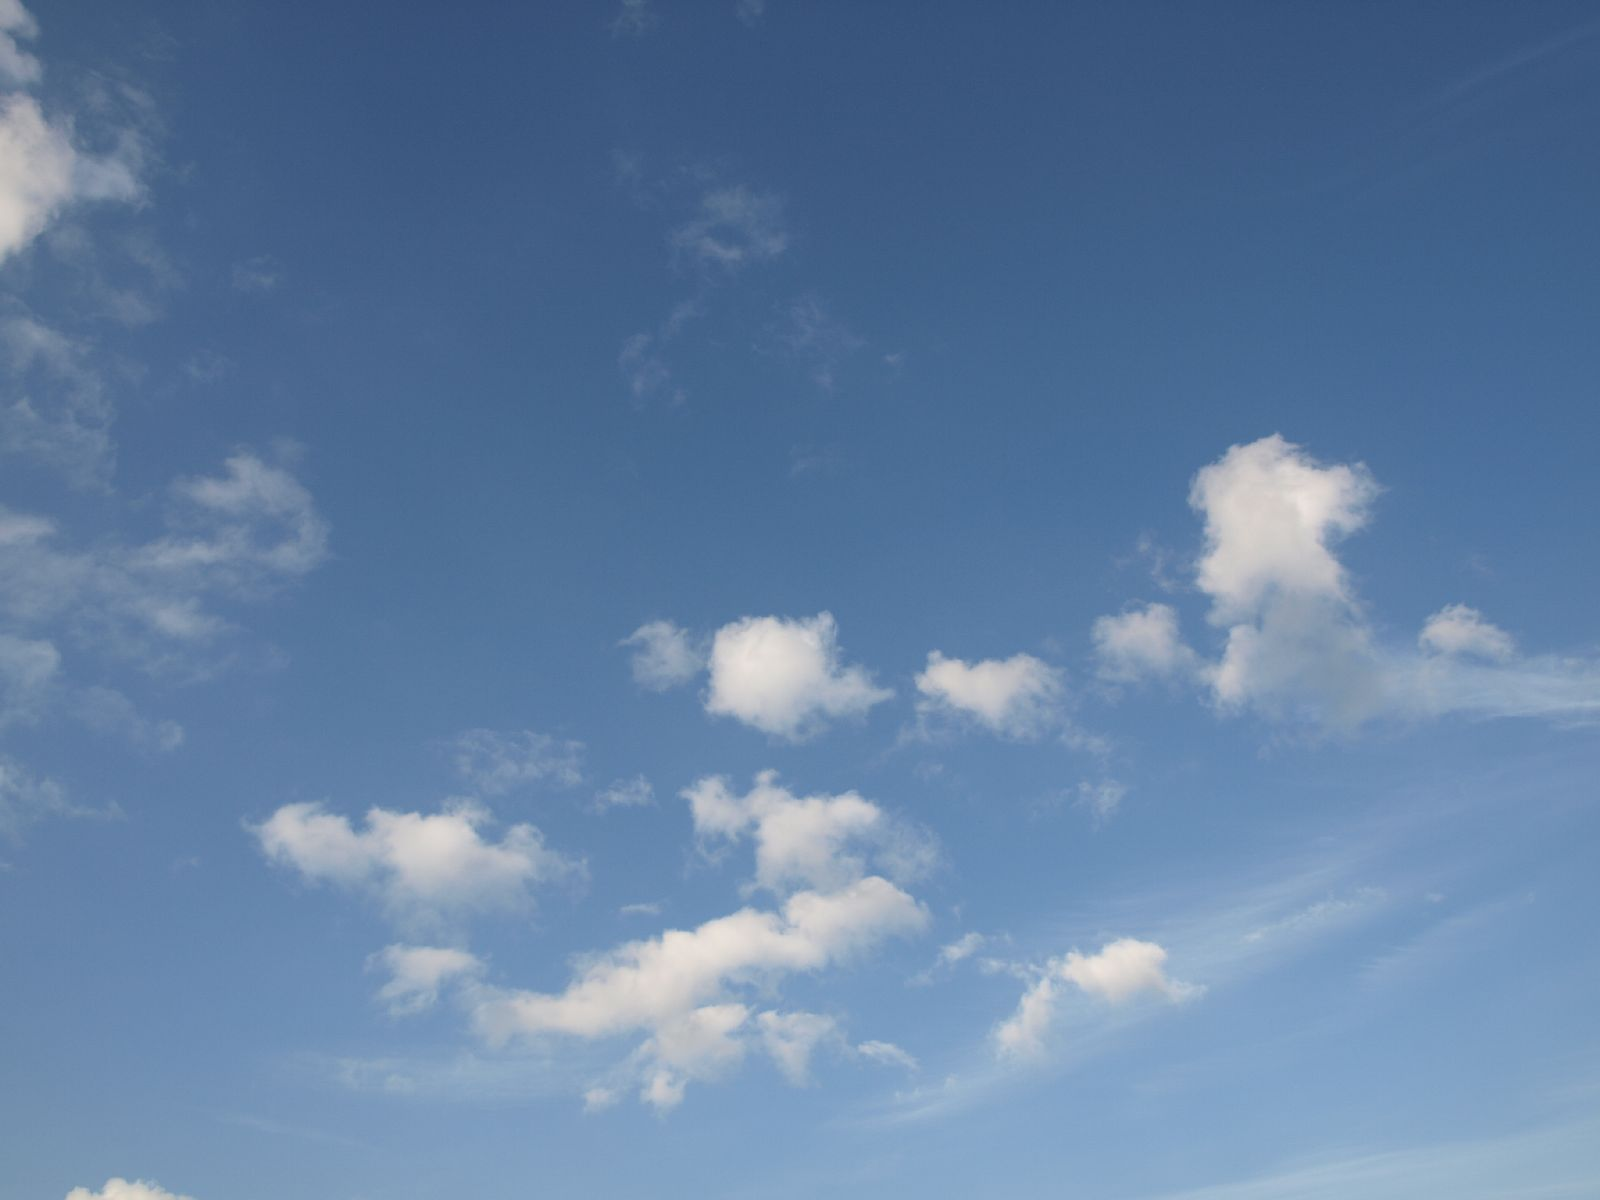 Sky_Clouds_Photo_Texture_A_P4120953